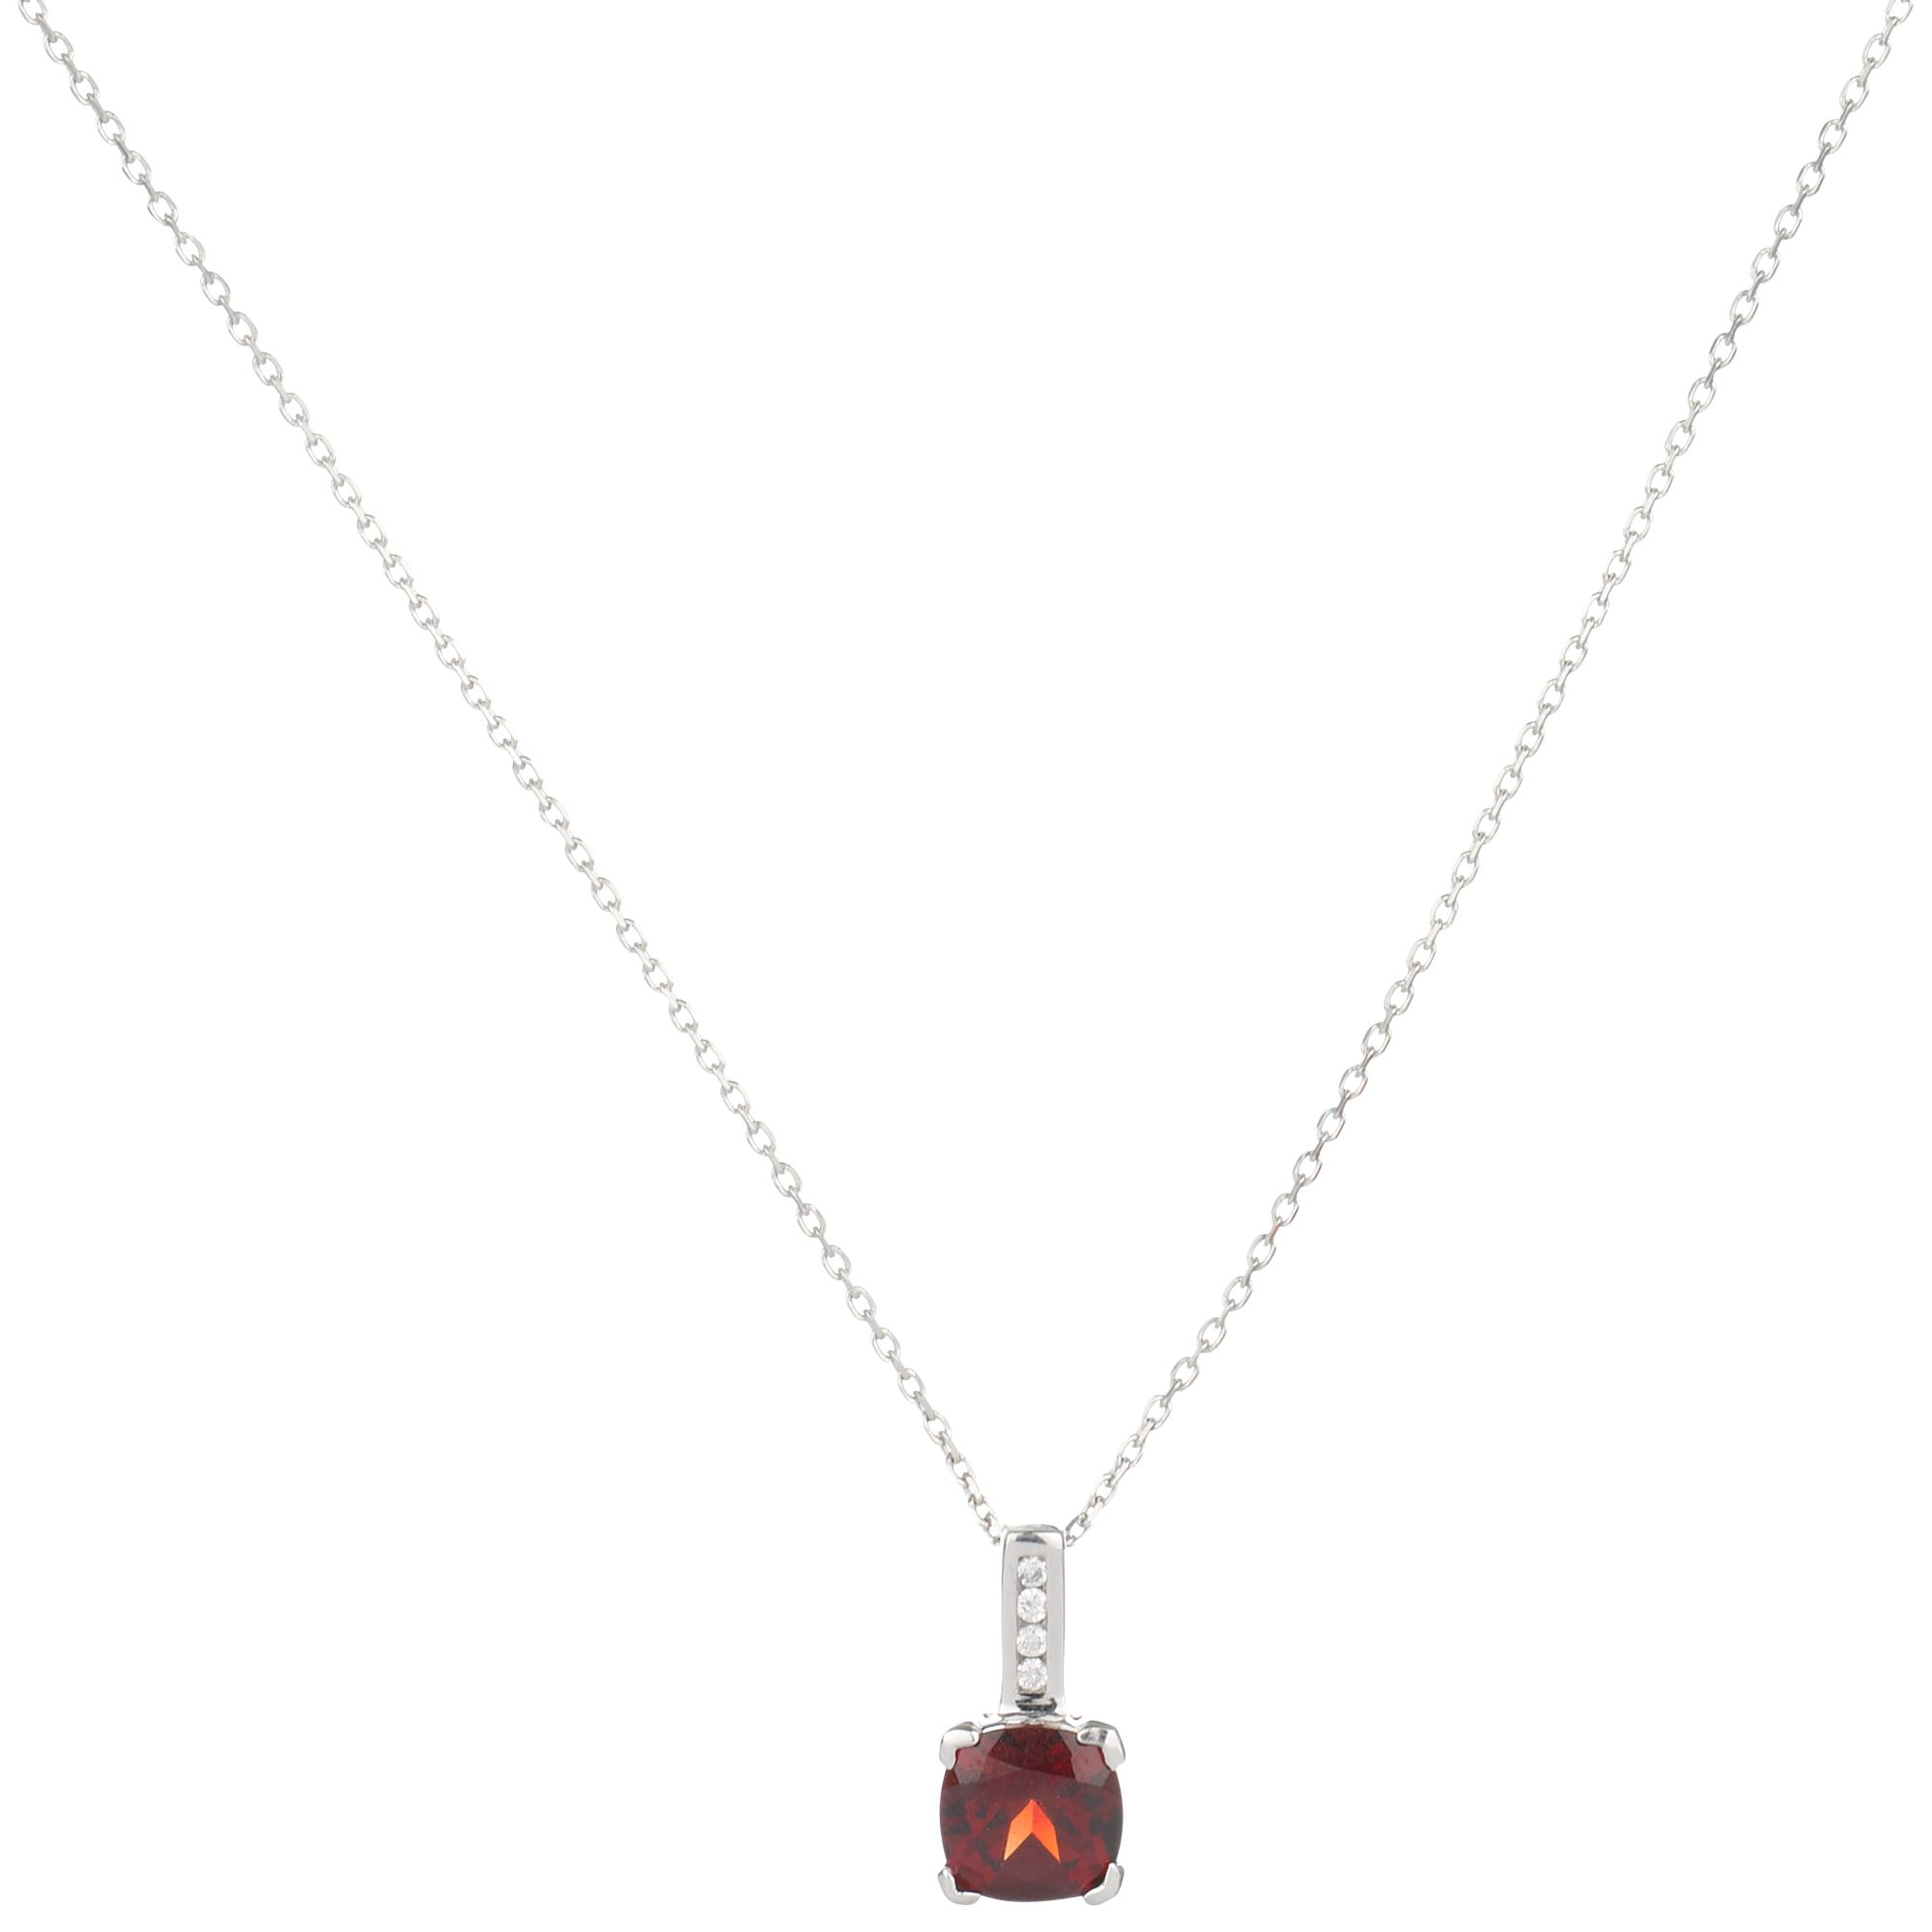 9ct White Gold Garnet Cushion Cut Diamond Pendant Necklace